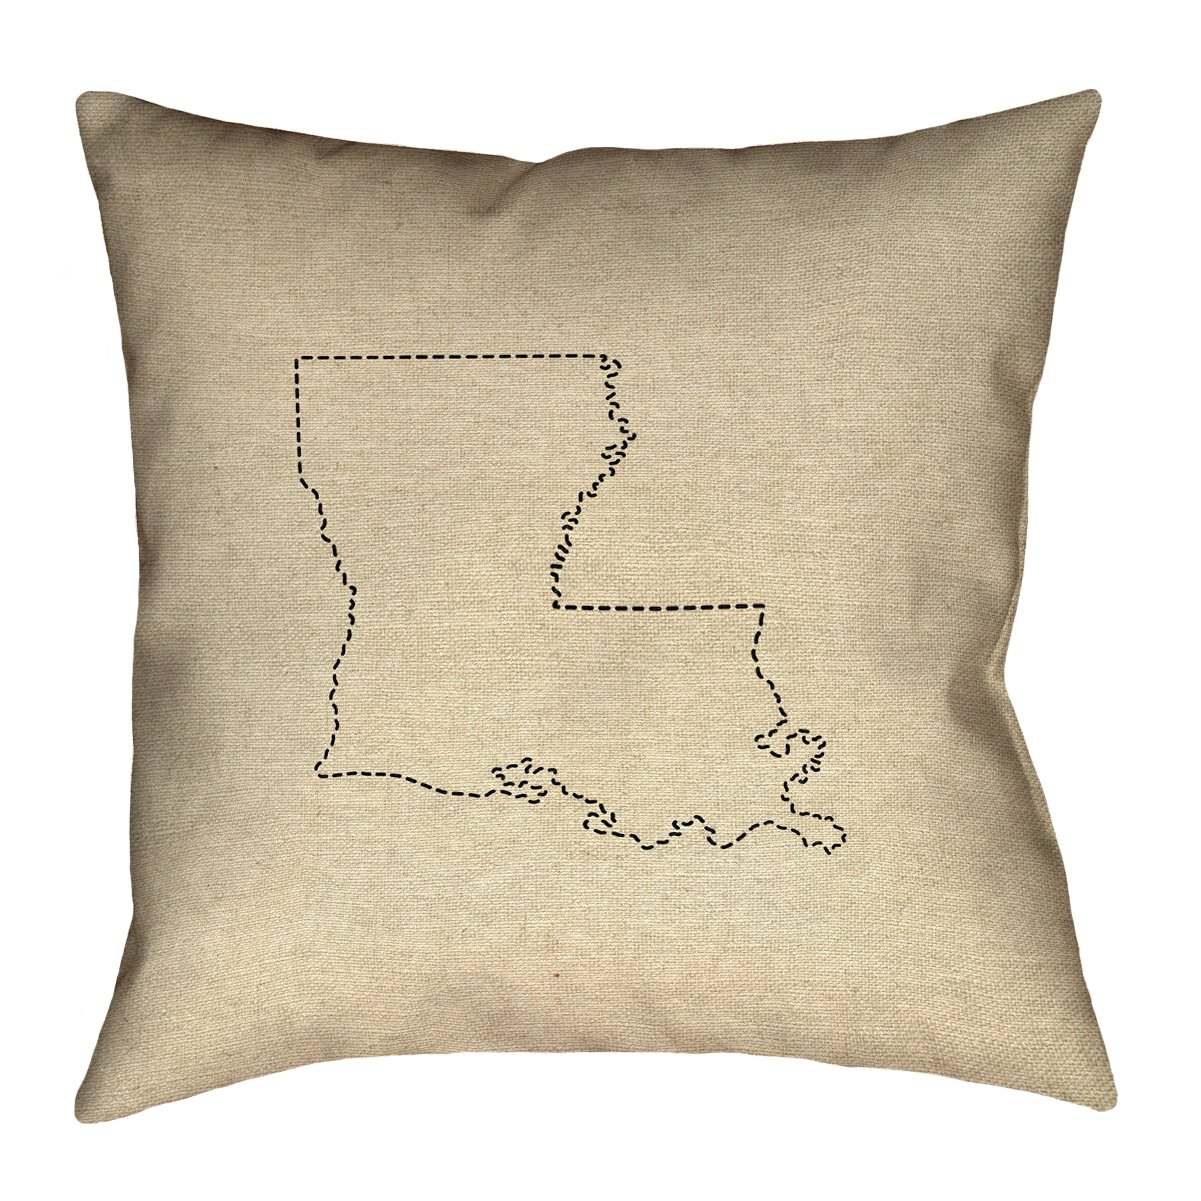 ArtVerse Katelyn Smith 26 x 26 Spun Polyester Louisiana Outline Pillow